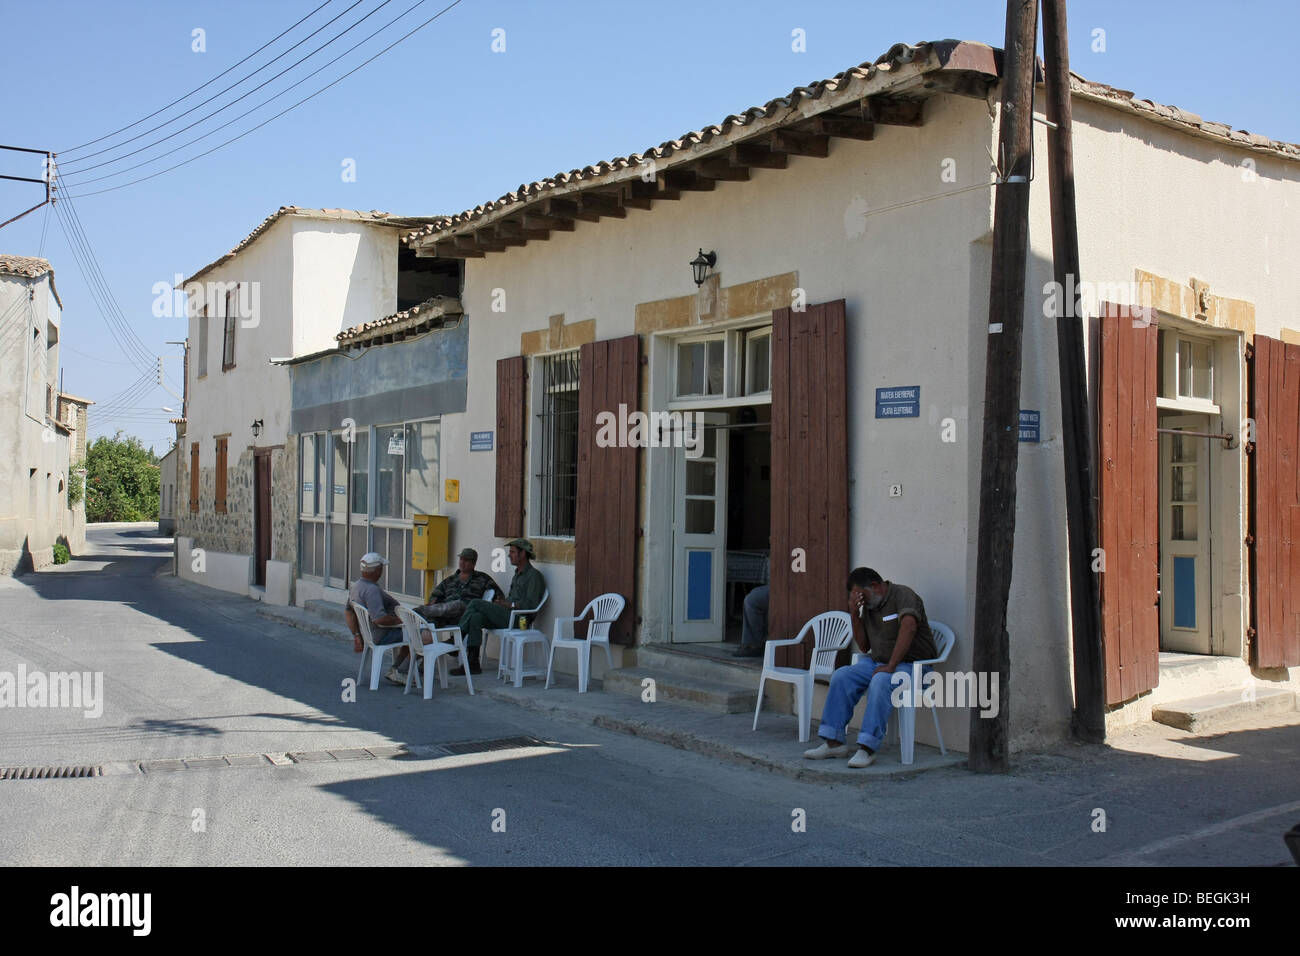 Local residents at the café in the small village of Pera, Cyprus. - Stock Image